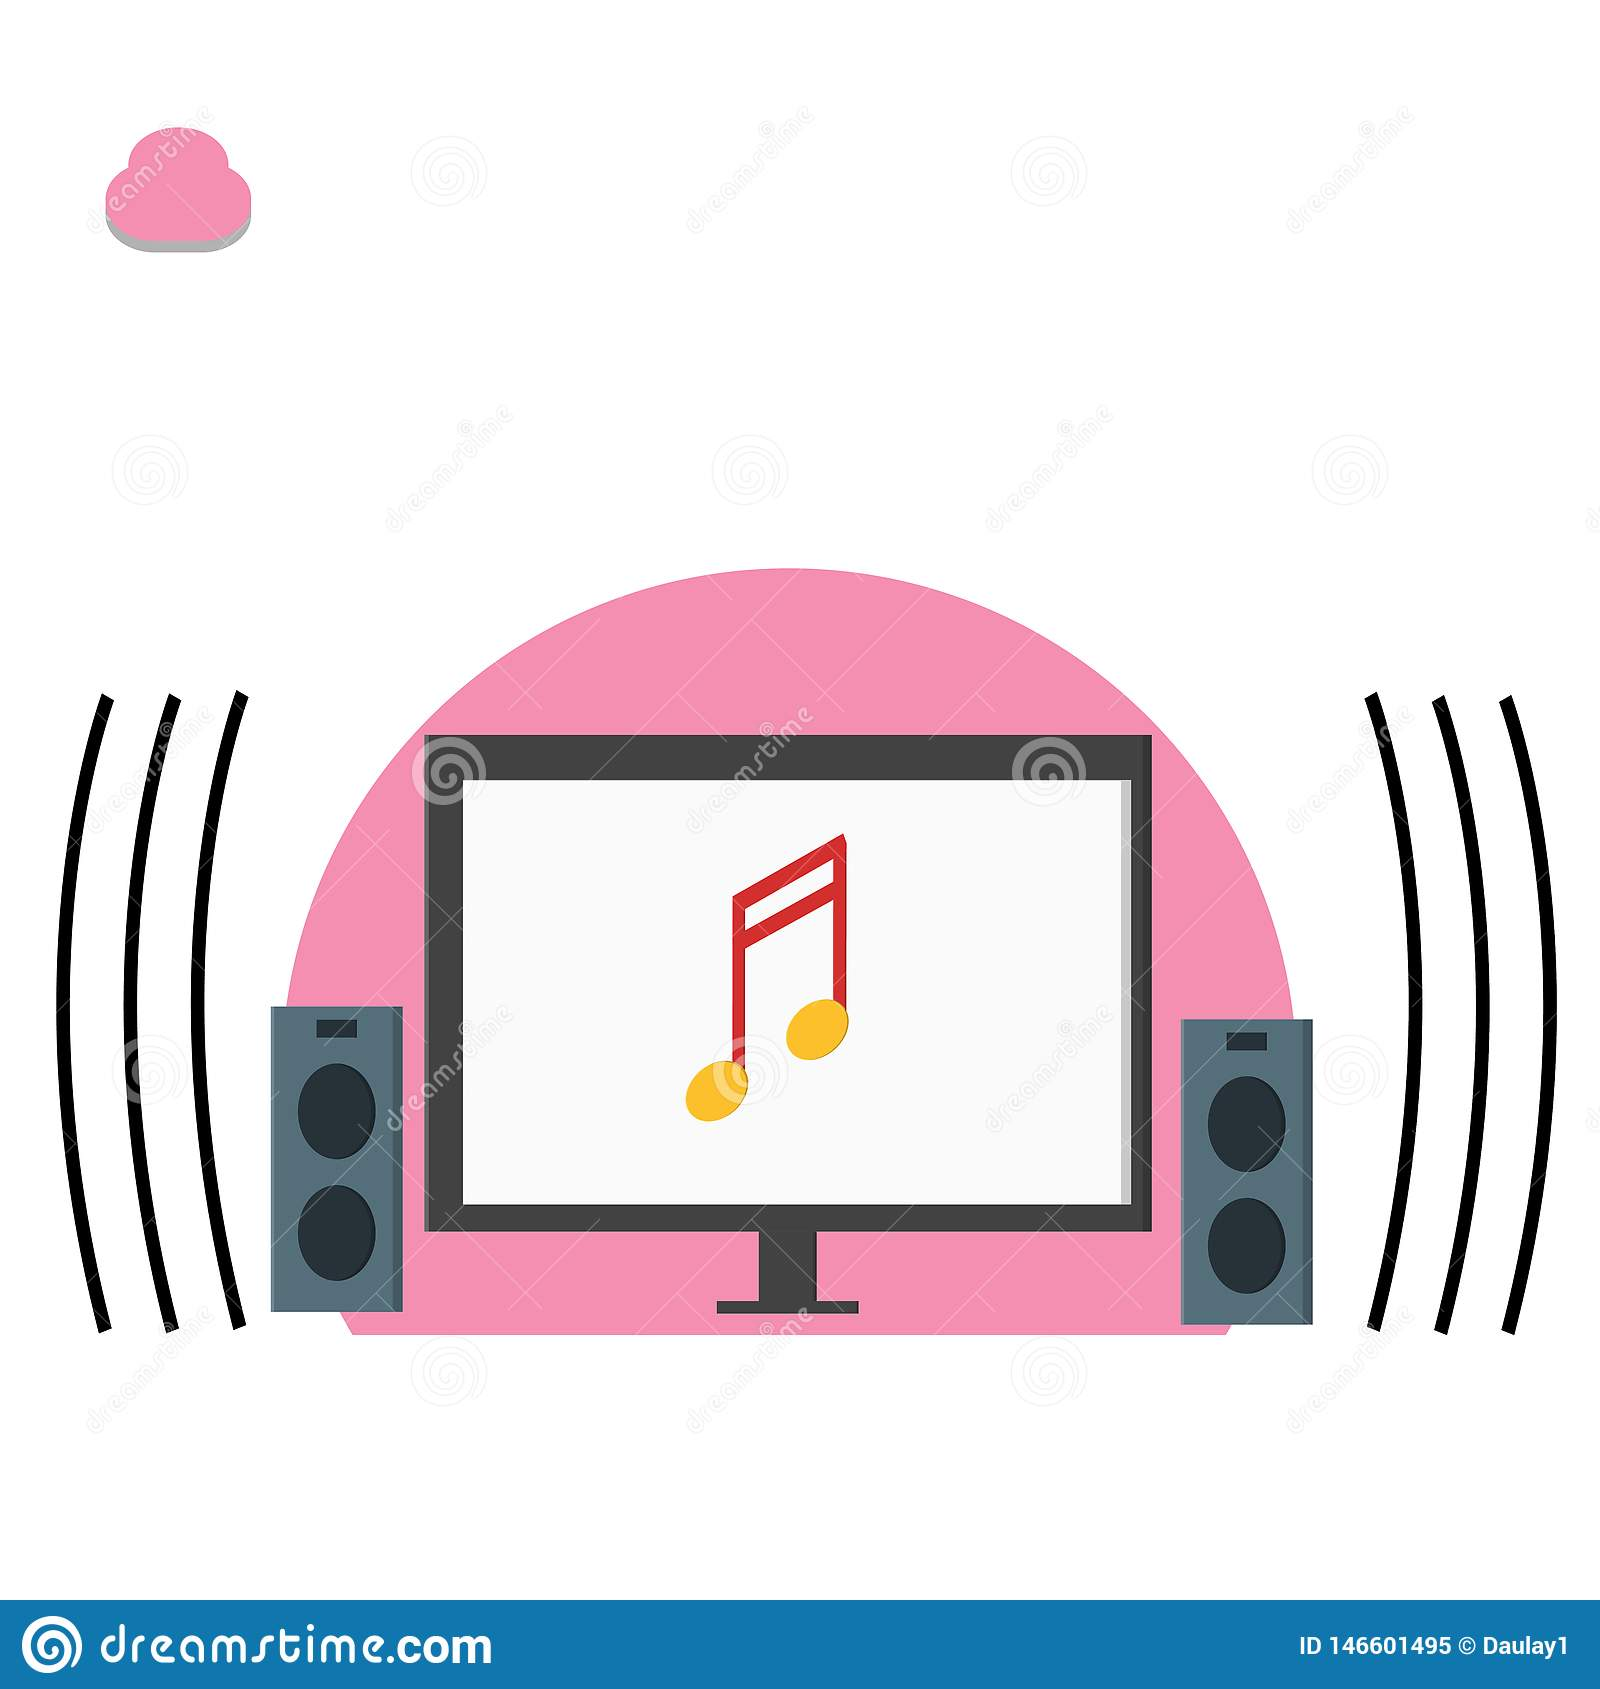 Computer and music note, playing music illustration - vector